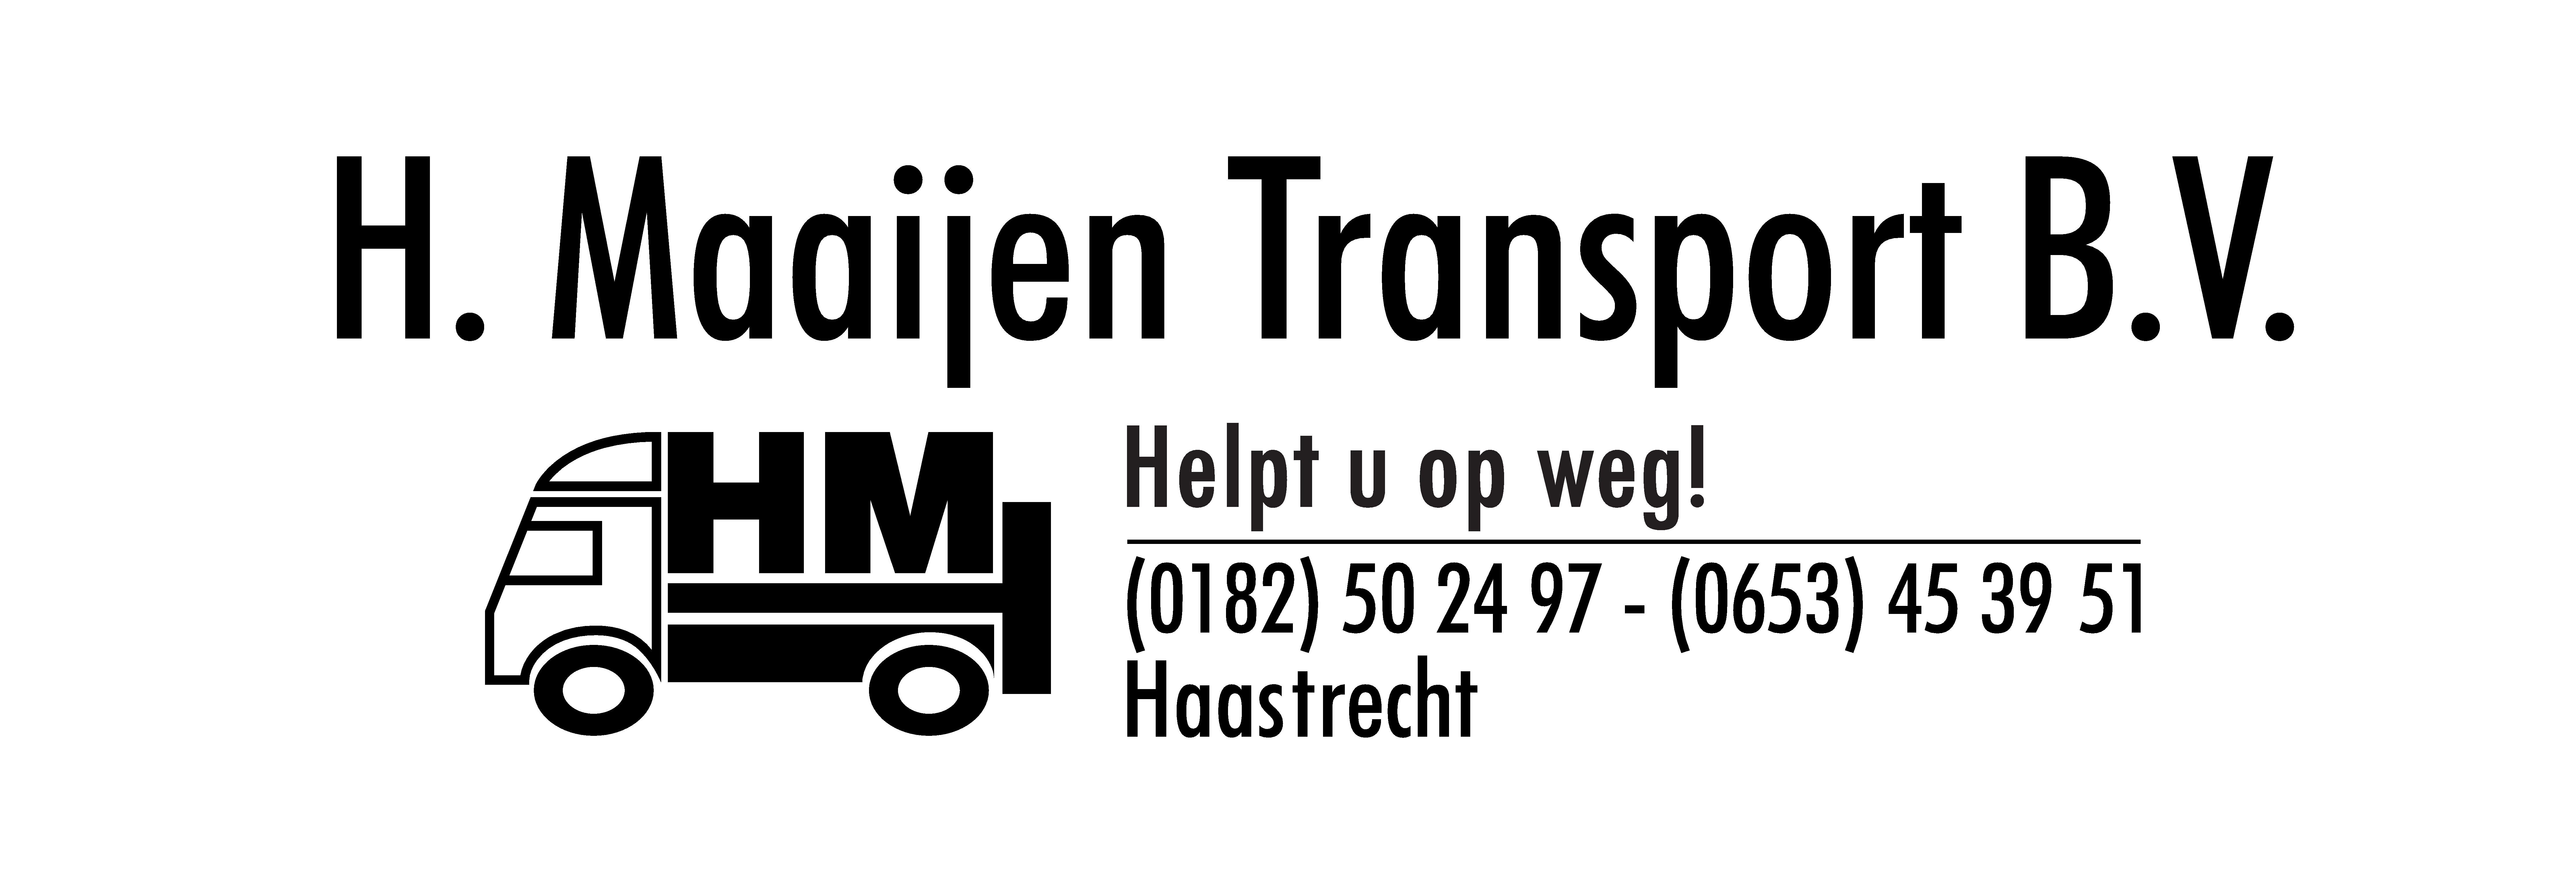 H. Maaijen Transport B.V.